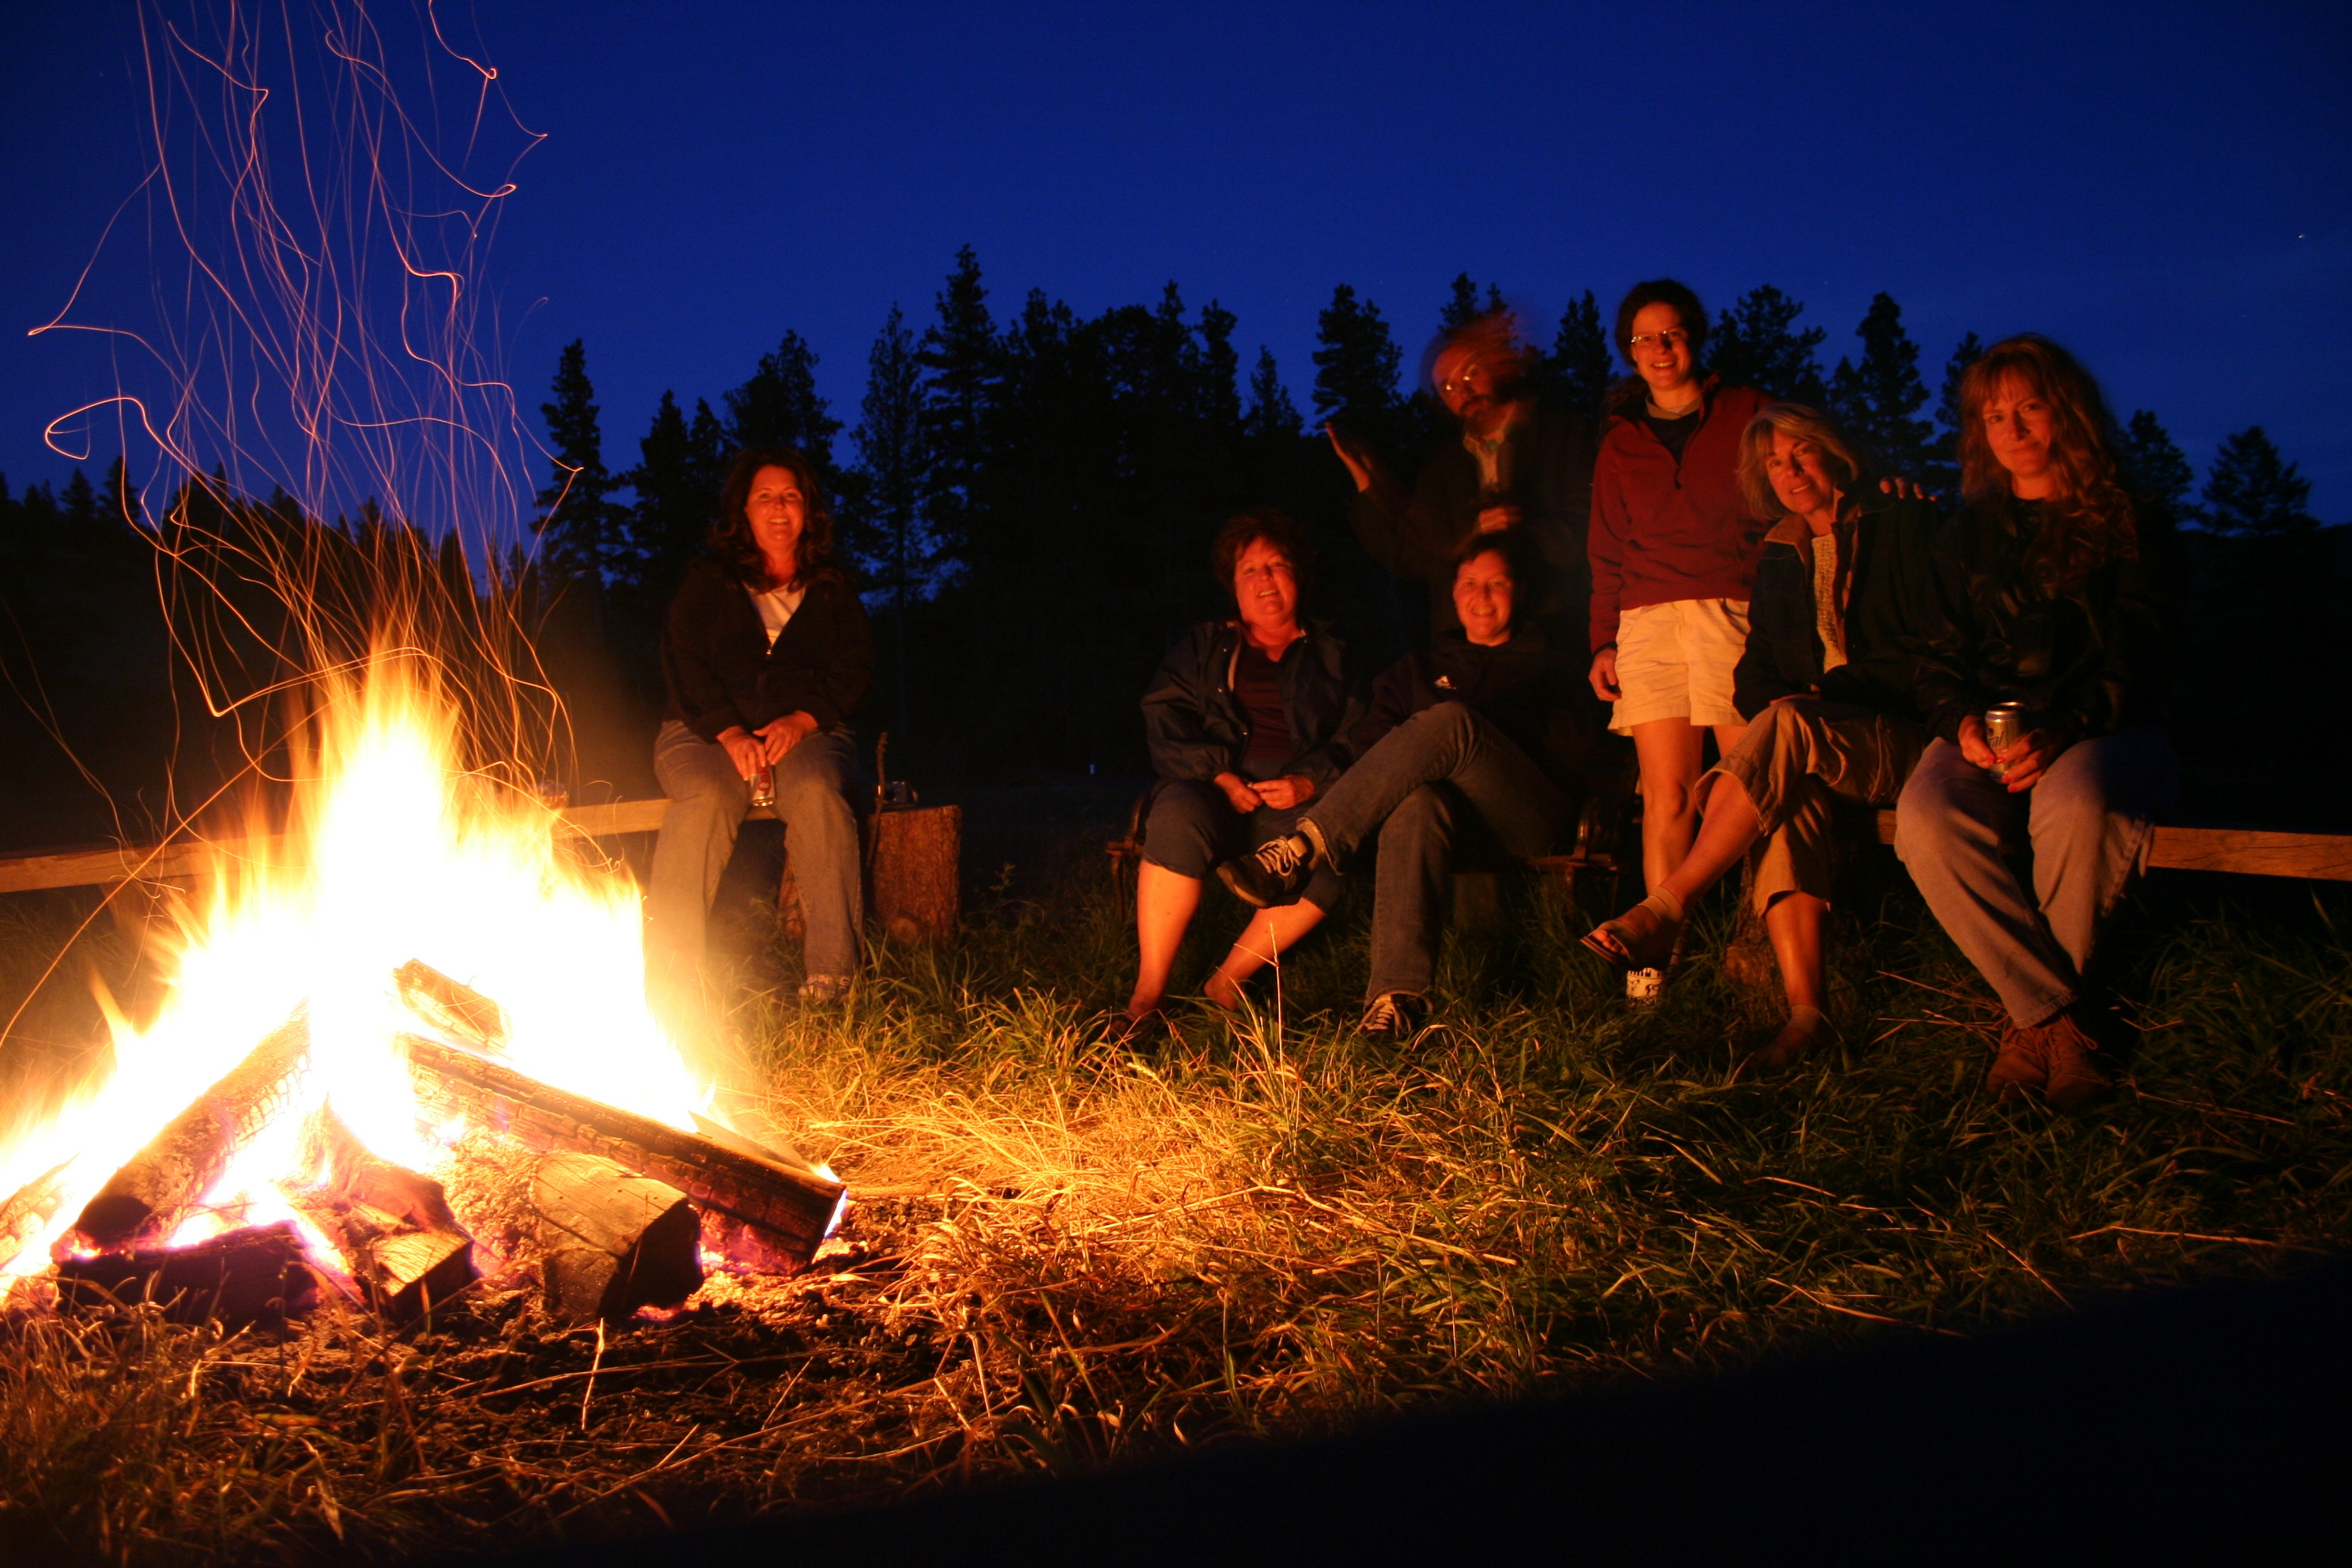 There is no better way to take in those beautiful Montana night's than around a campfire with new friends and old!